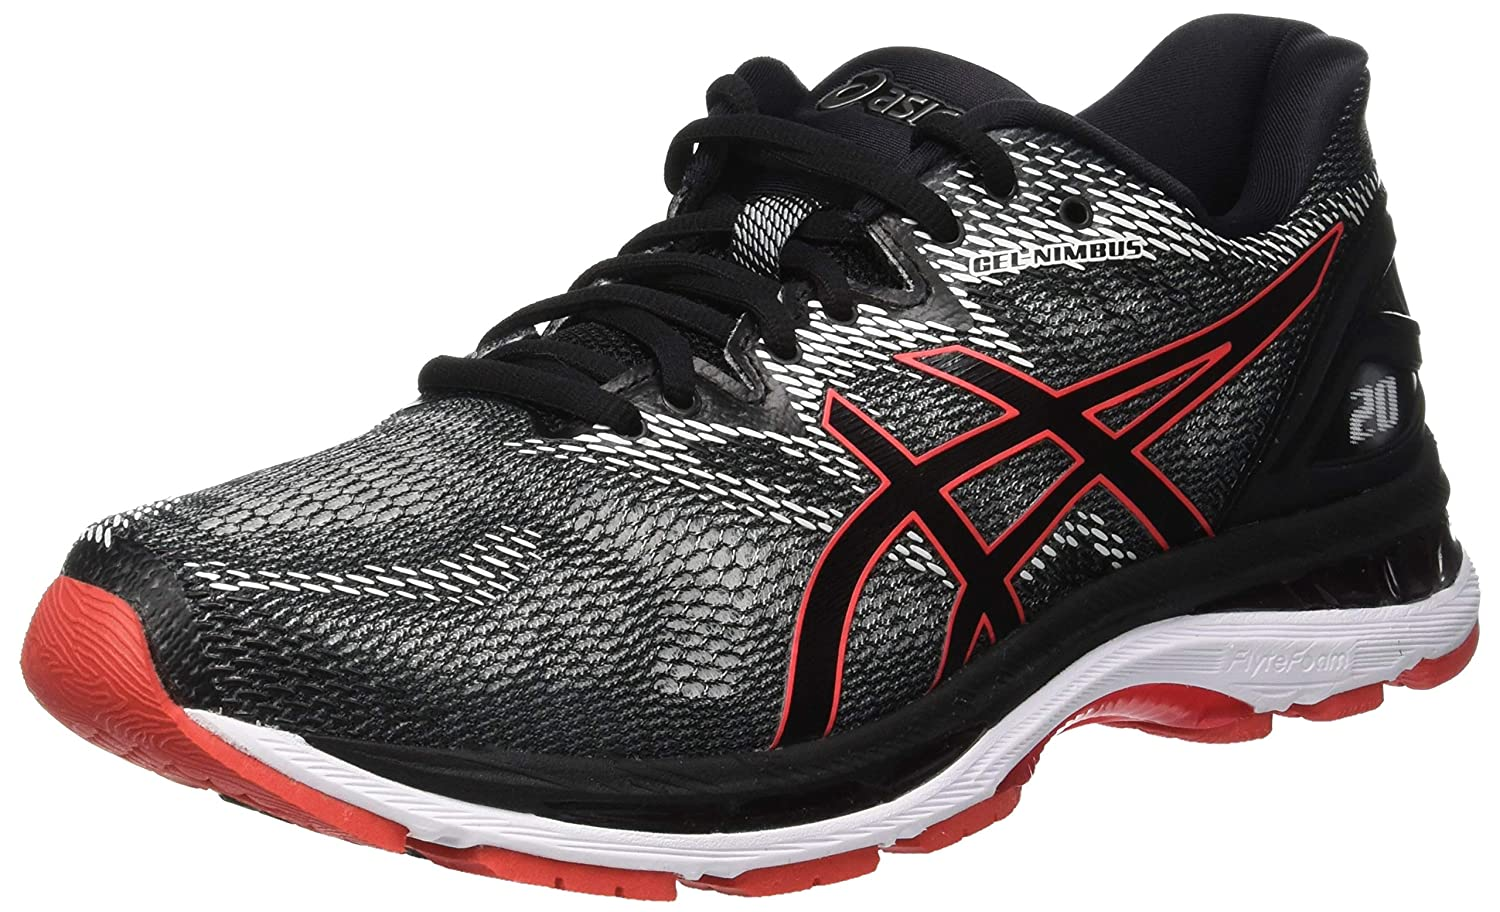 d8f94c698af Amazon.com  Asics Gel-Nimbus 20  T800N-002  Men Running Shoes Black Red  Alert  Health   Personal Care